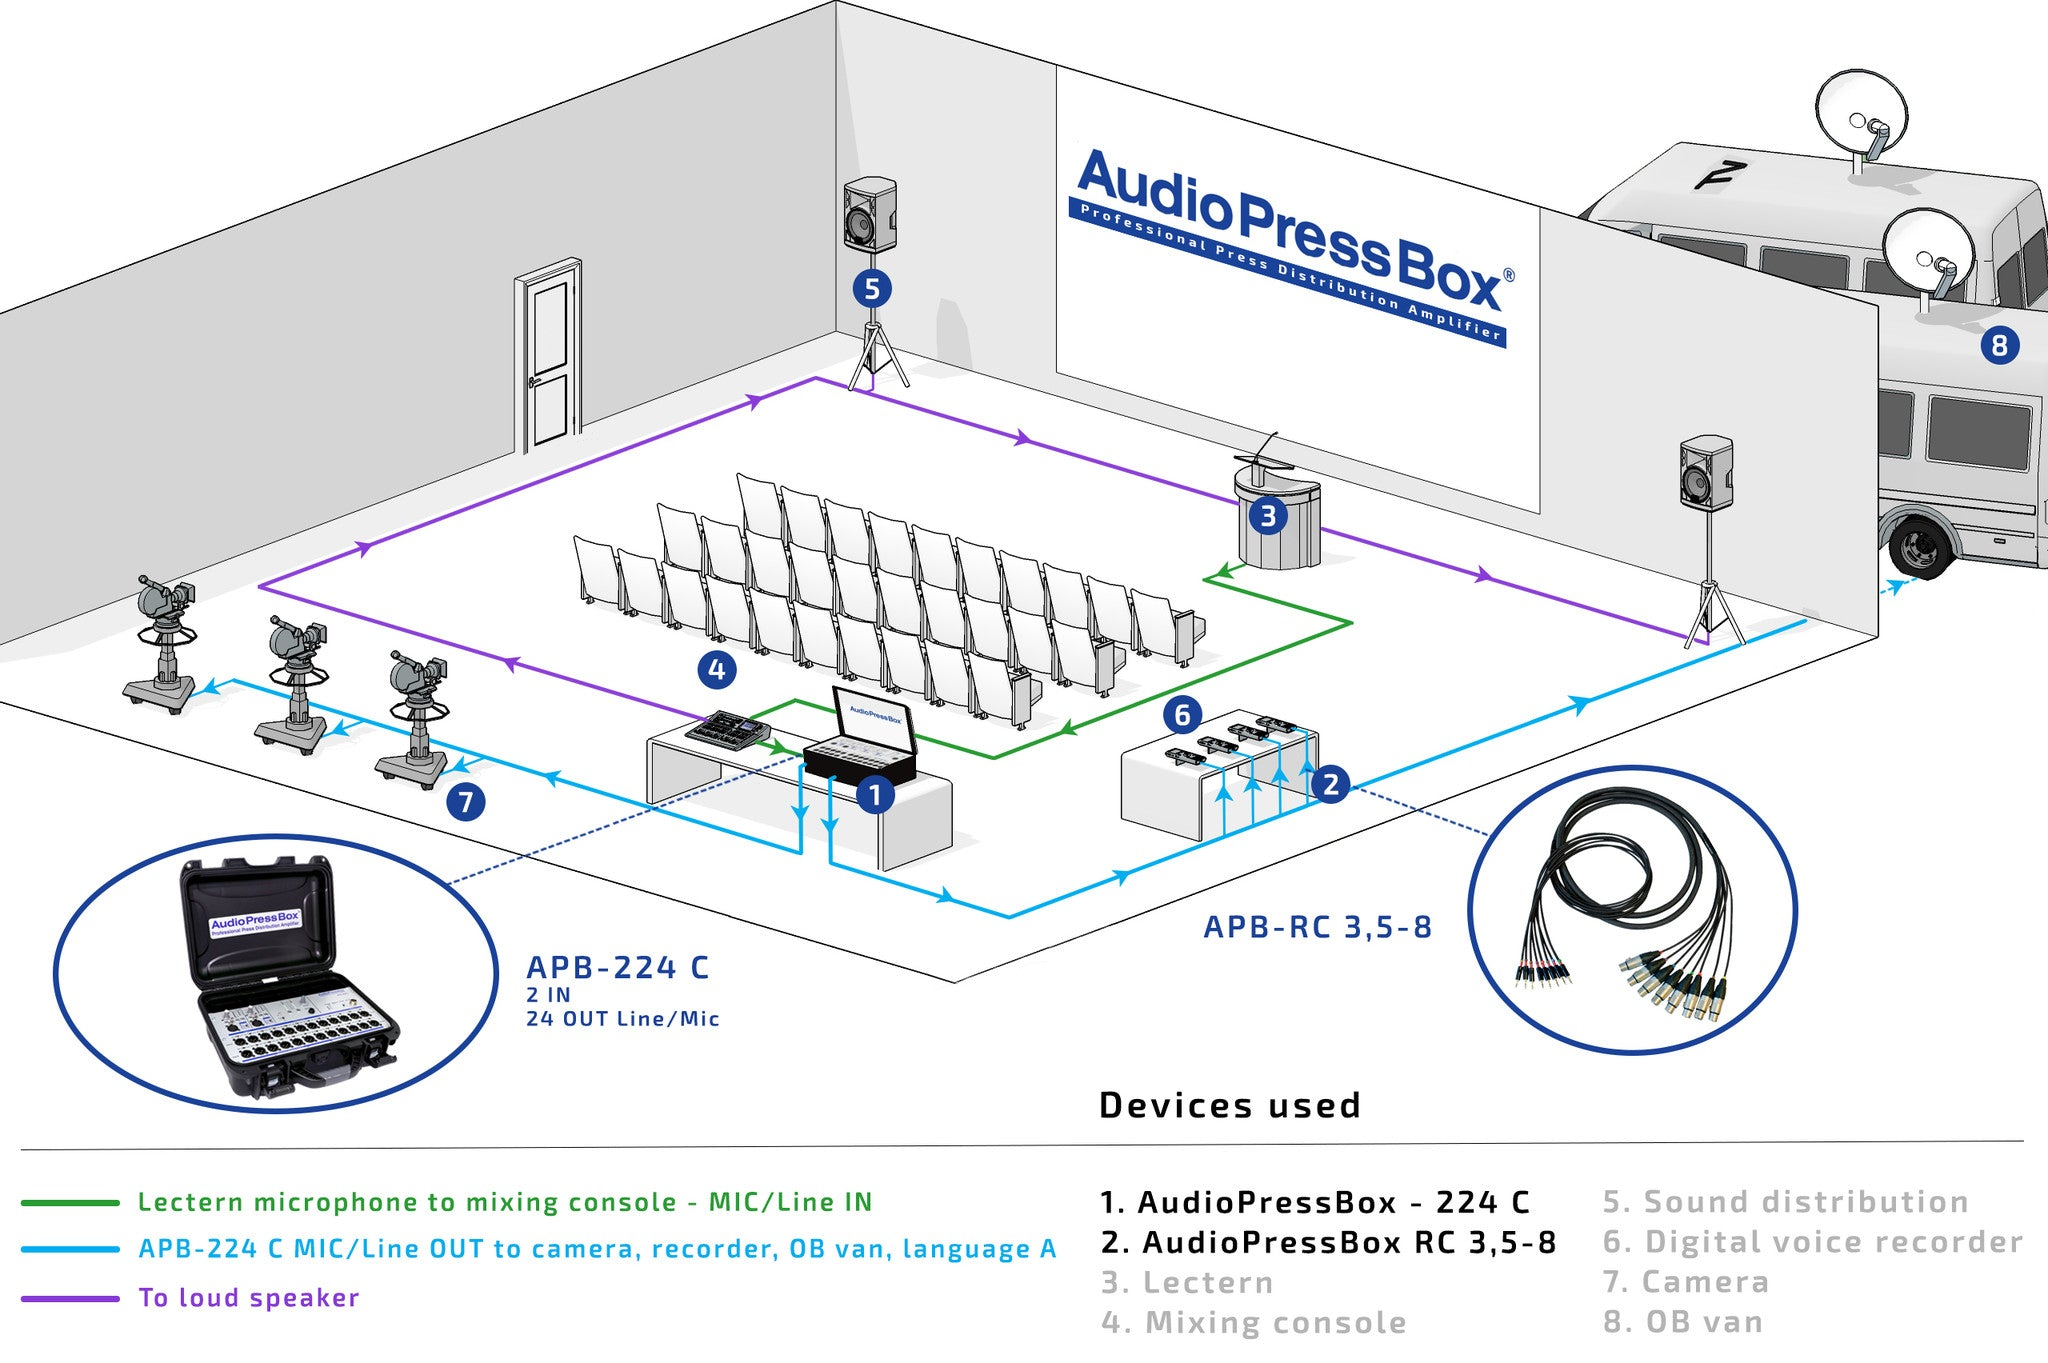 AudioPressBox, Mult Box, PressBox, Mult Box, Press Patch Box, Pressesplitter, APB-224 C.